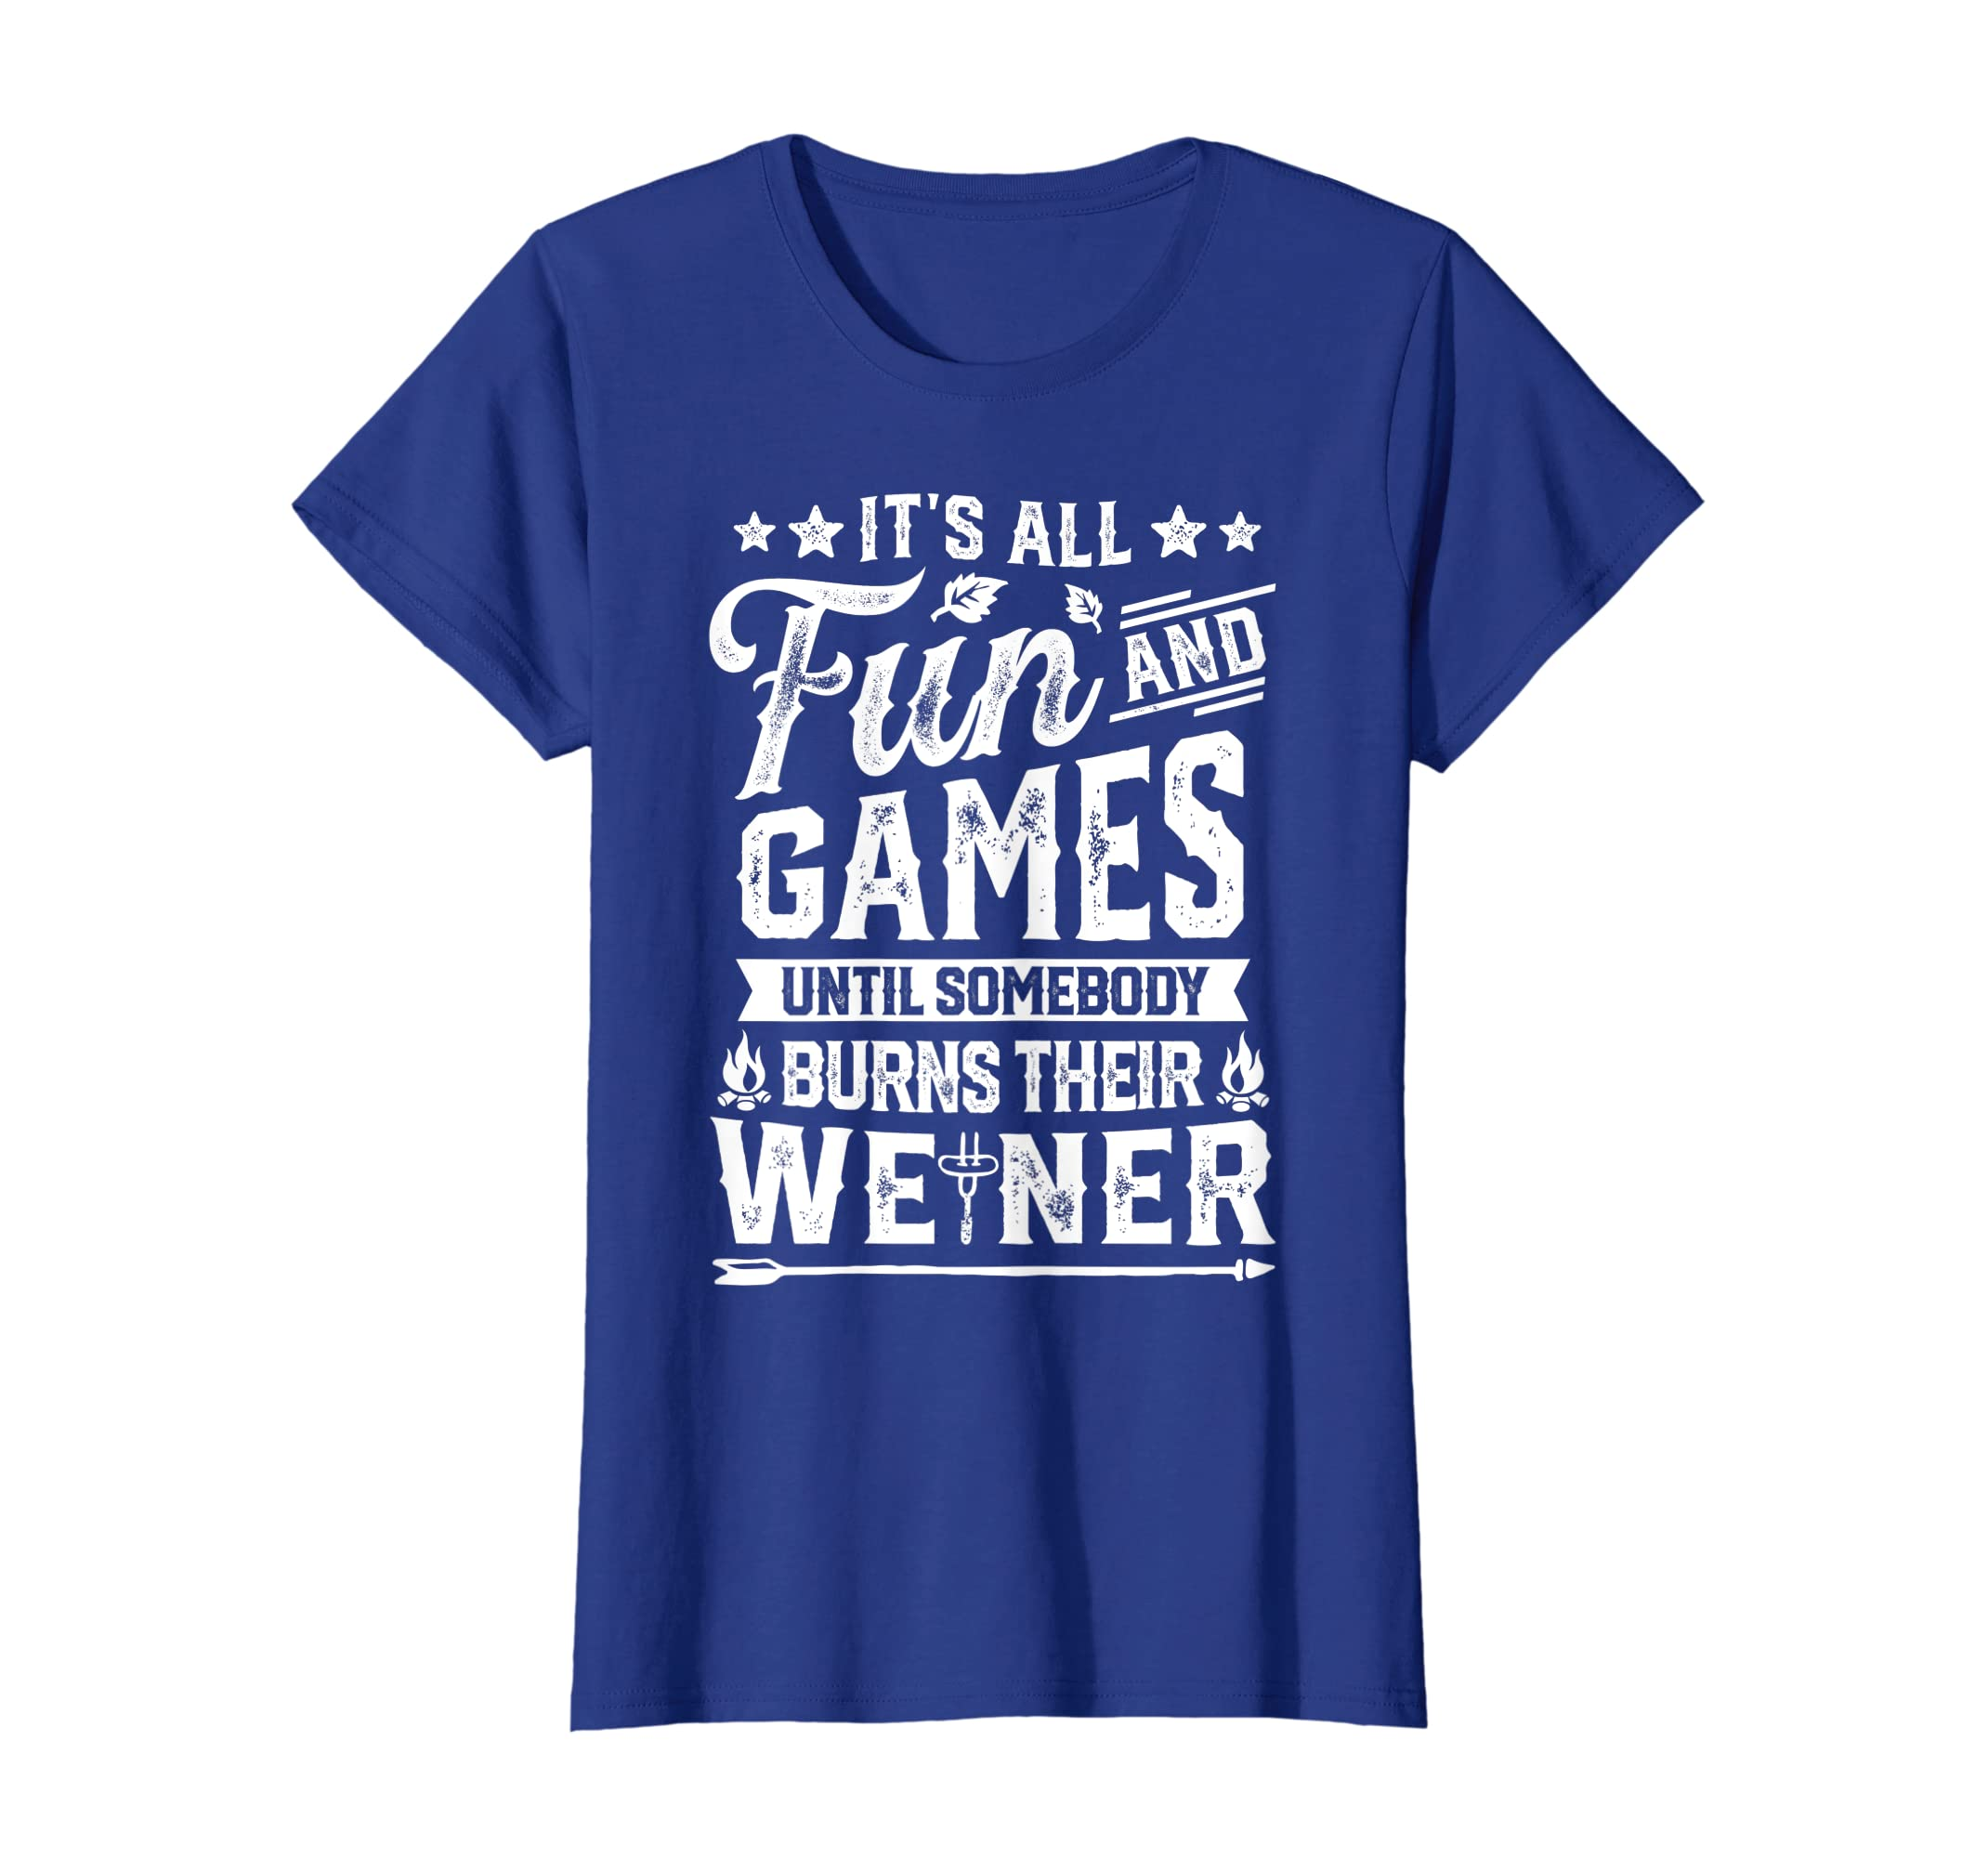 78db037d Amazon.com: It's All Fun And Games T shirt Camping Funny Weiner Gifts:  Clothing